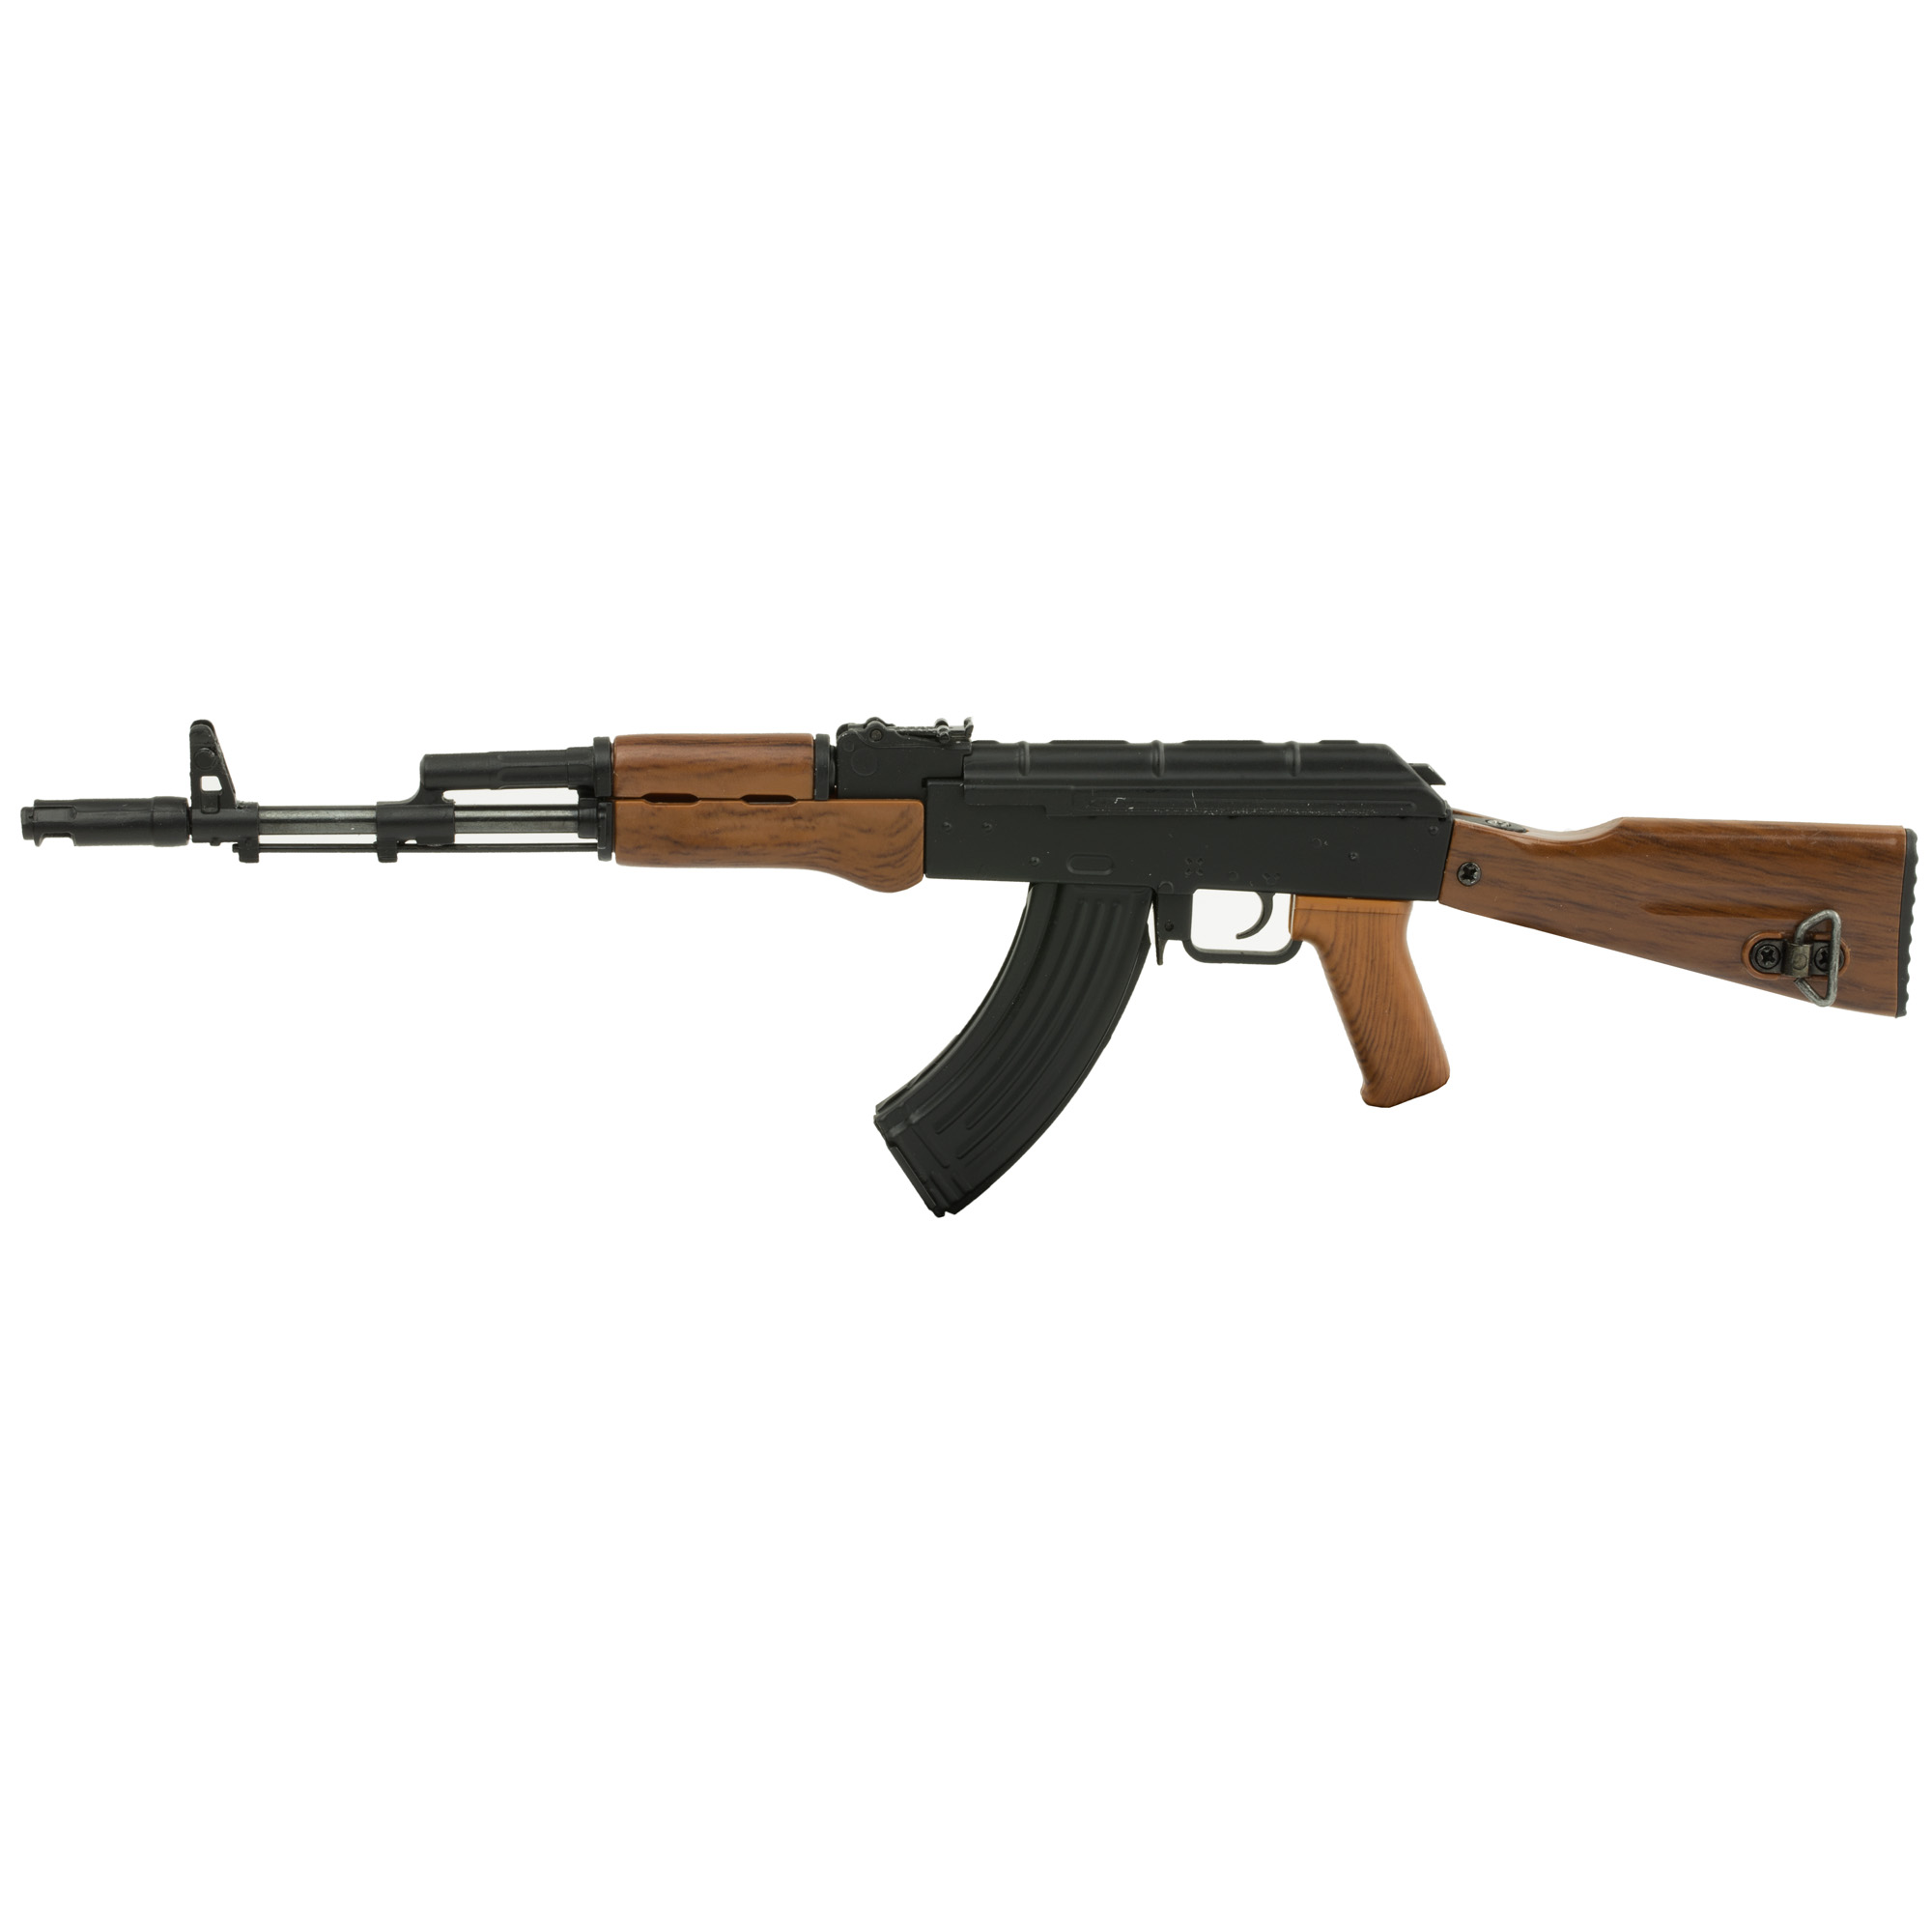 Adv Tech Ak47 Cast 1/3 Scl Non-fire